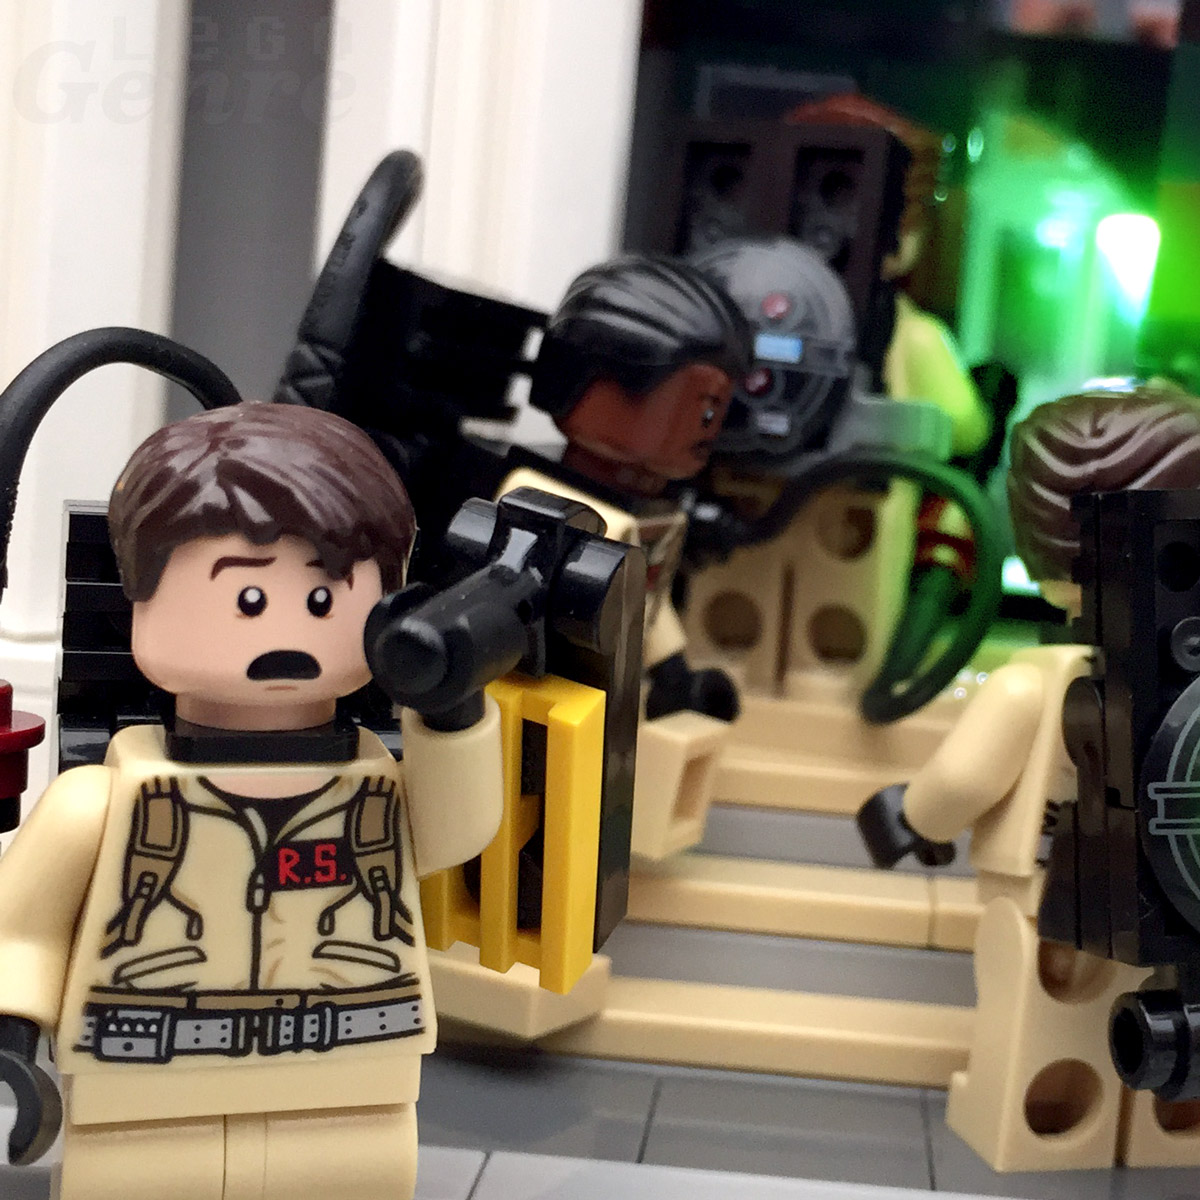 LegoGenre: Who you gonna call? …Ghostbusters!